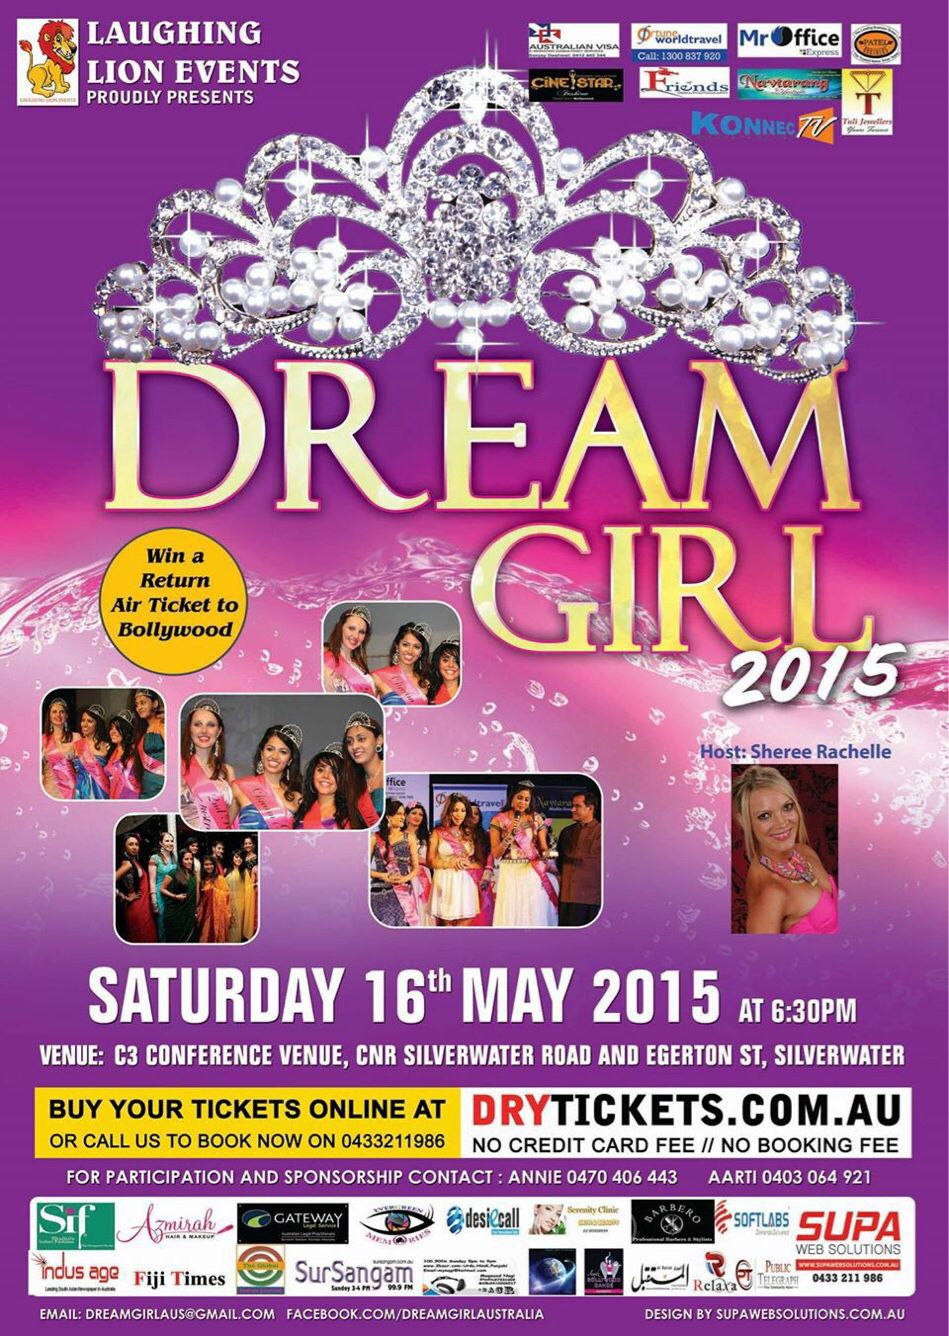 26 days left  Get your tickets to Australia's exclusive multicultural talent quest We have girls from  Pakistan, Bangladesh, Fiji, Vietnam, India, Uganda and Congo ...... Come and see their culture and talent Get your tickets at  http://goo.gl/m1dNmN Or write to us on dreamgirlaus@http://goo.gl/zVEZ